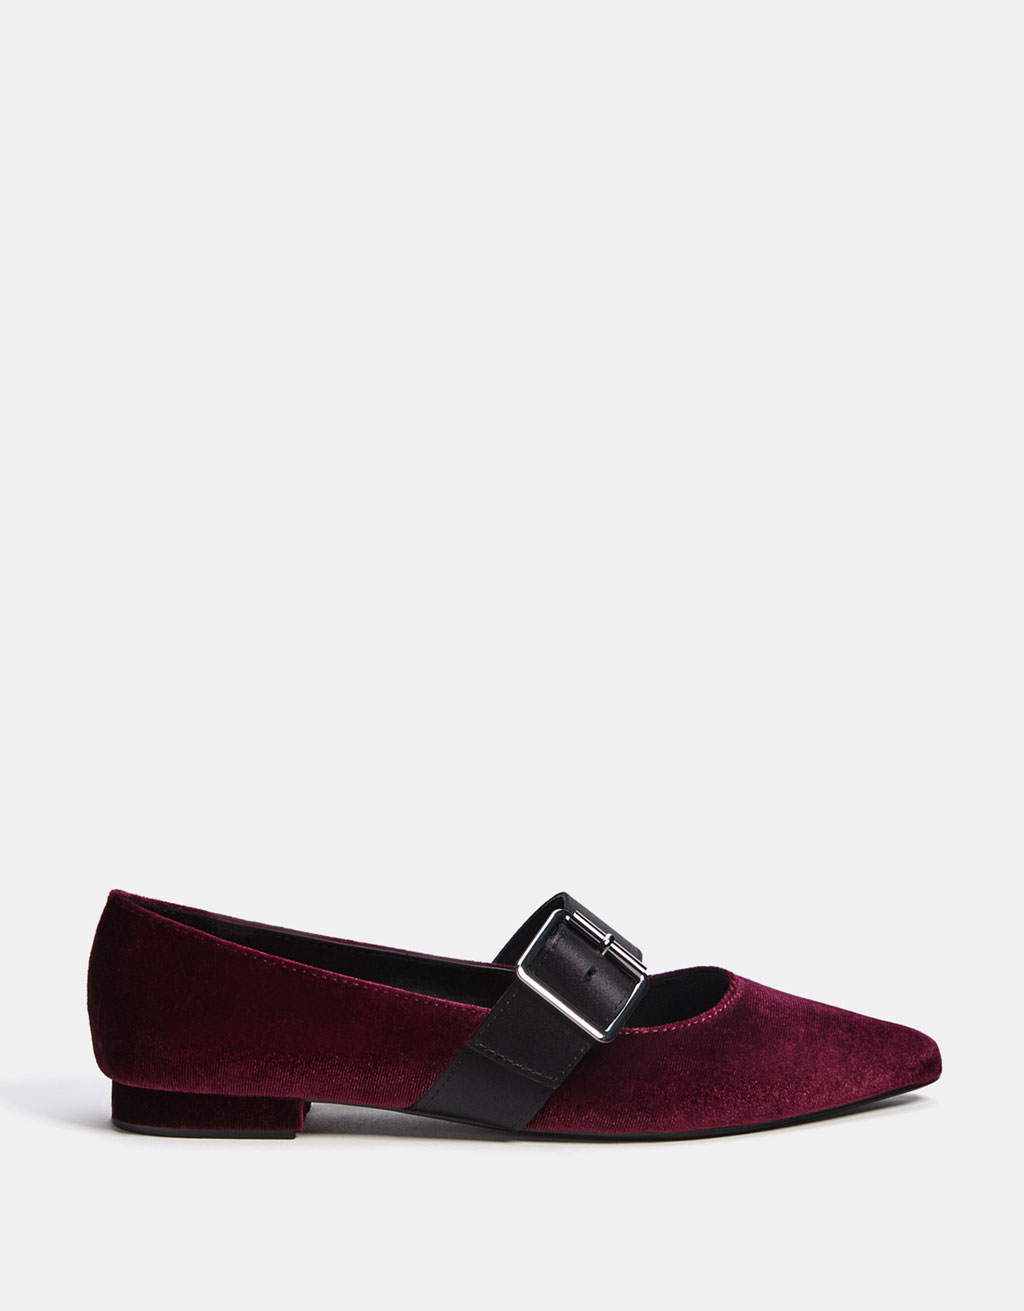 Velvet ballerinas with buckled ankle straps